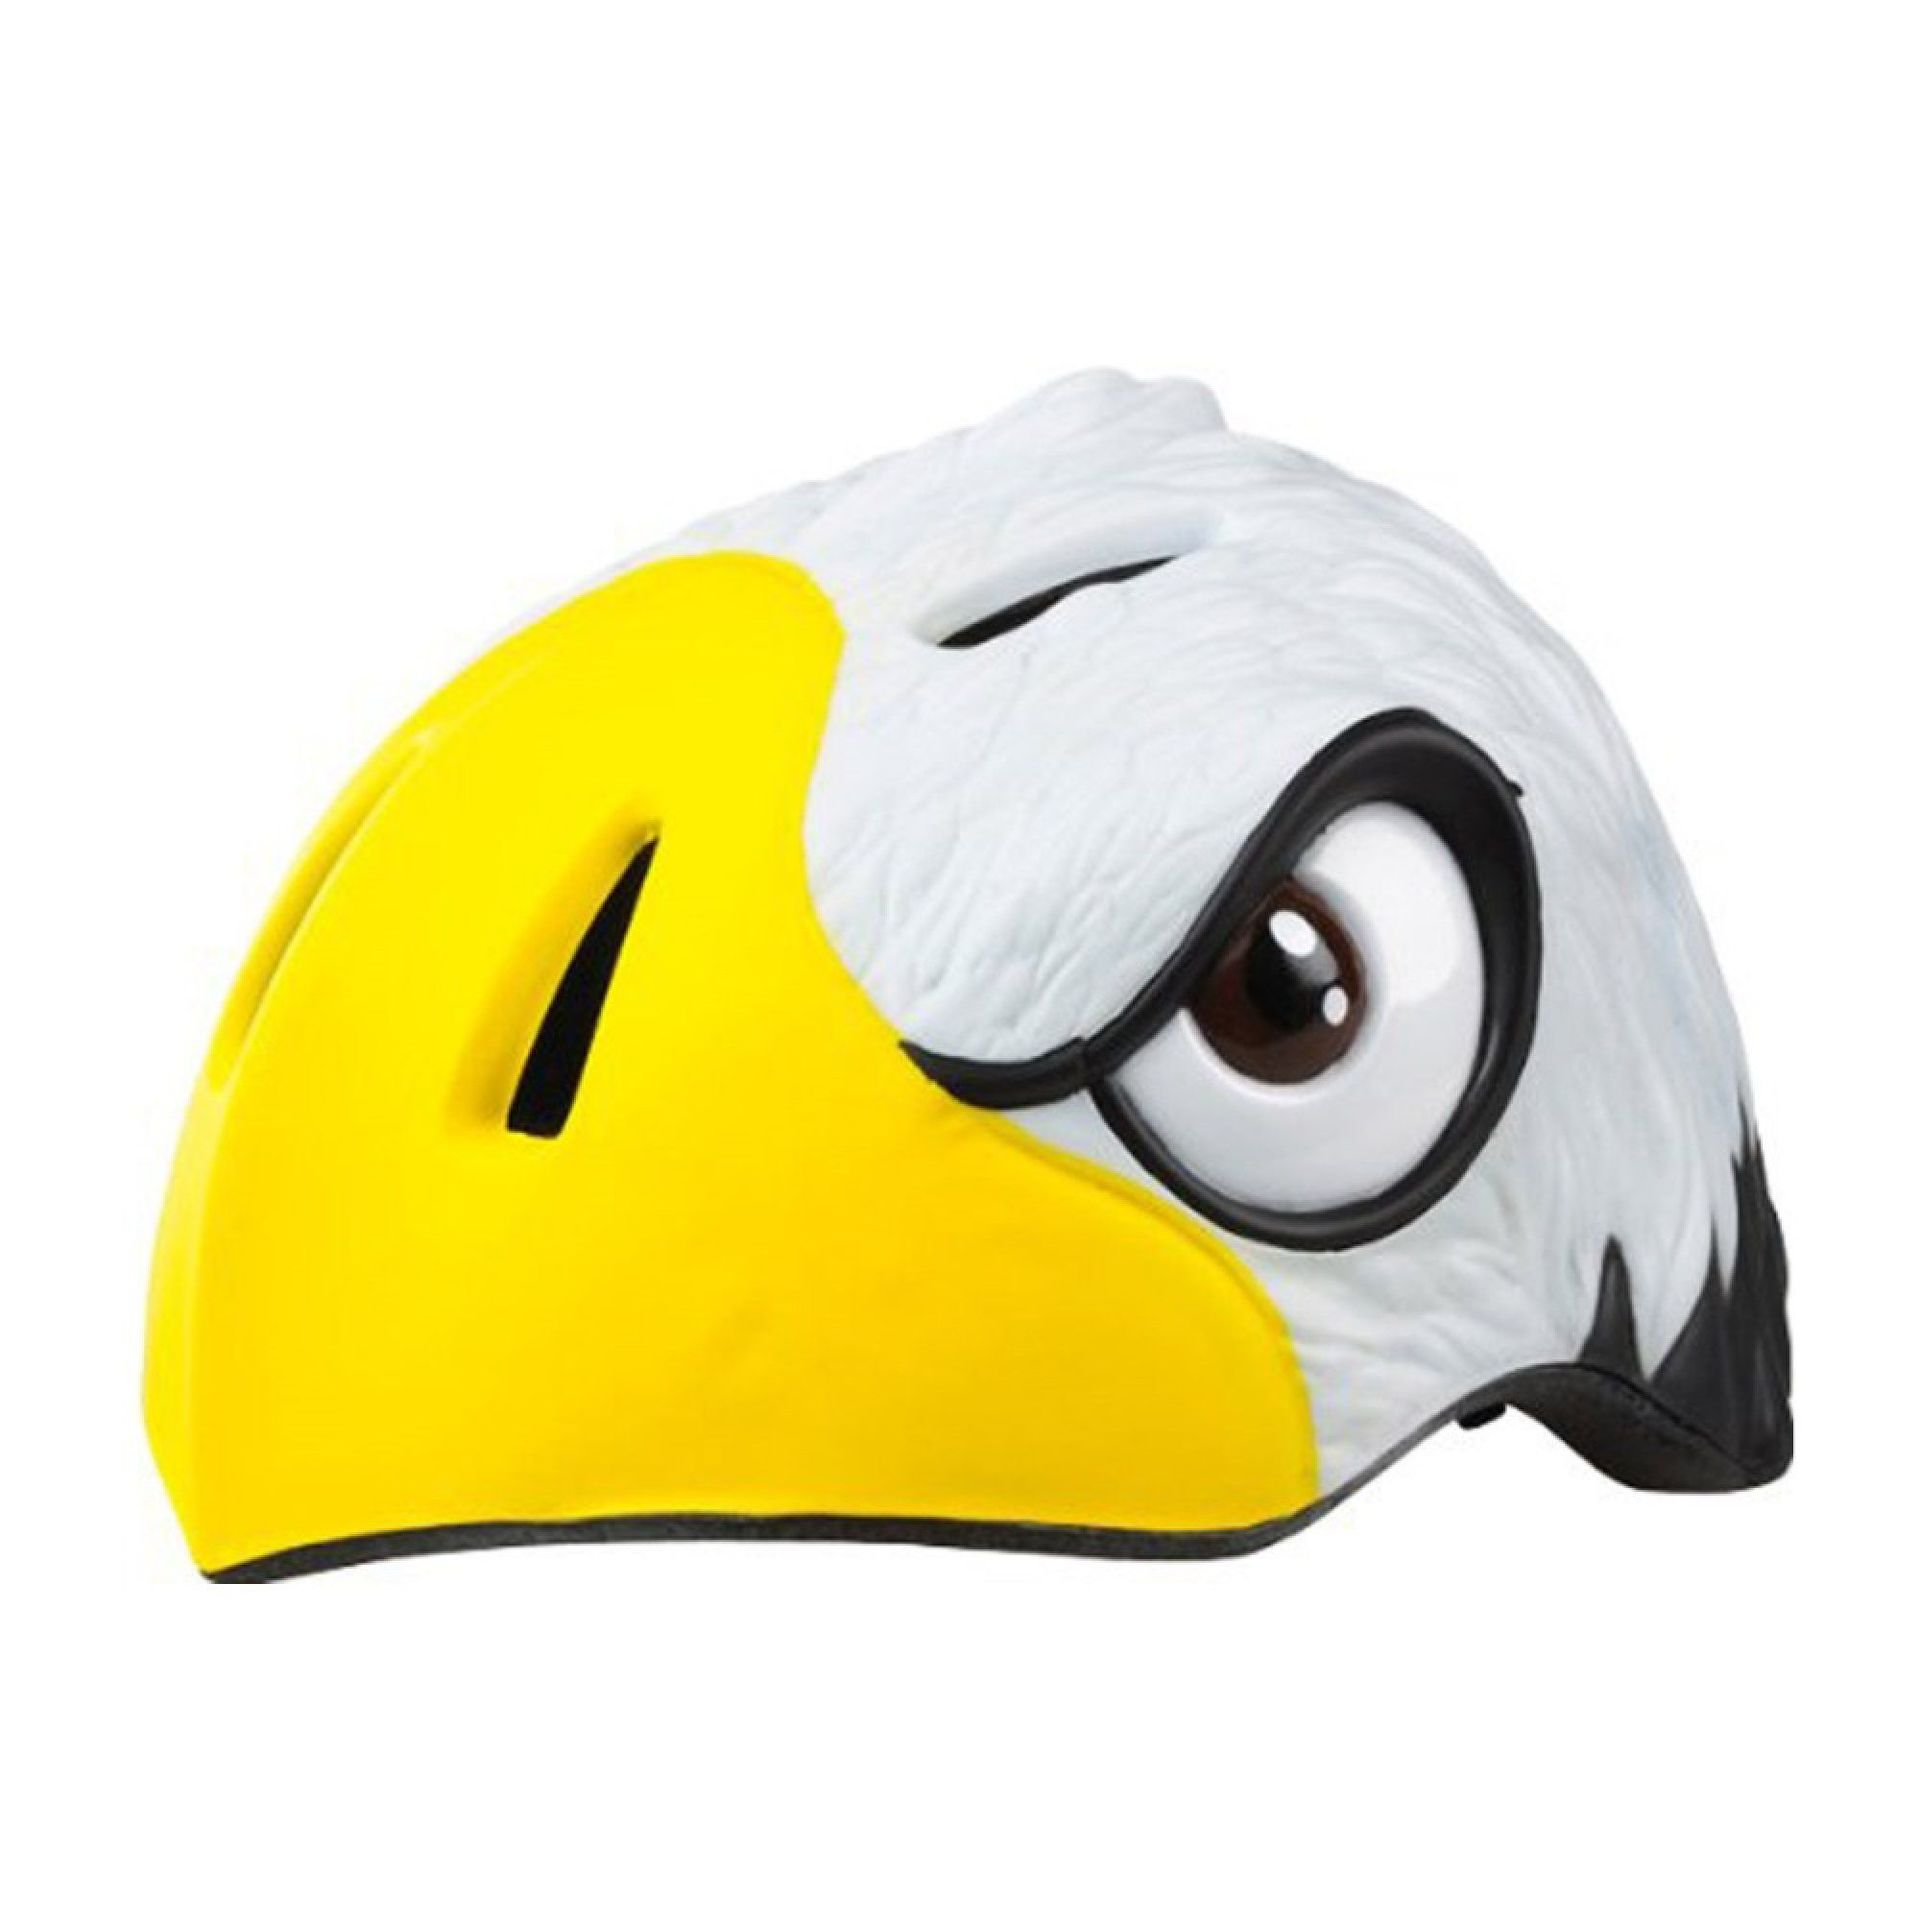 KASK ROWEROWY CRAZY SAFETY WHITE EAGLE